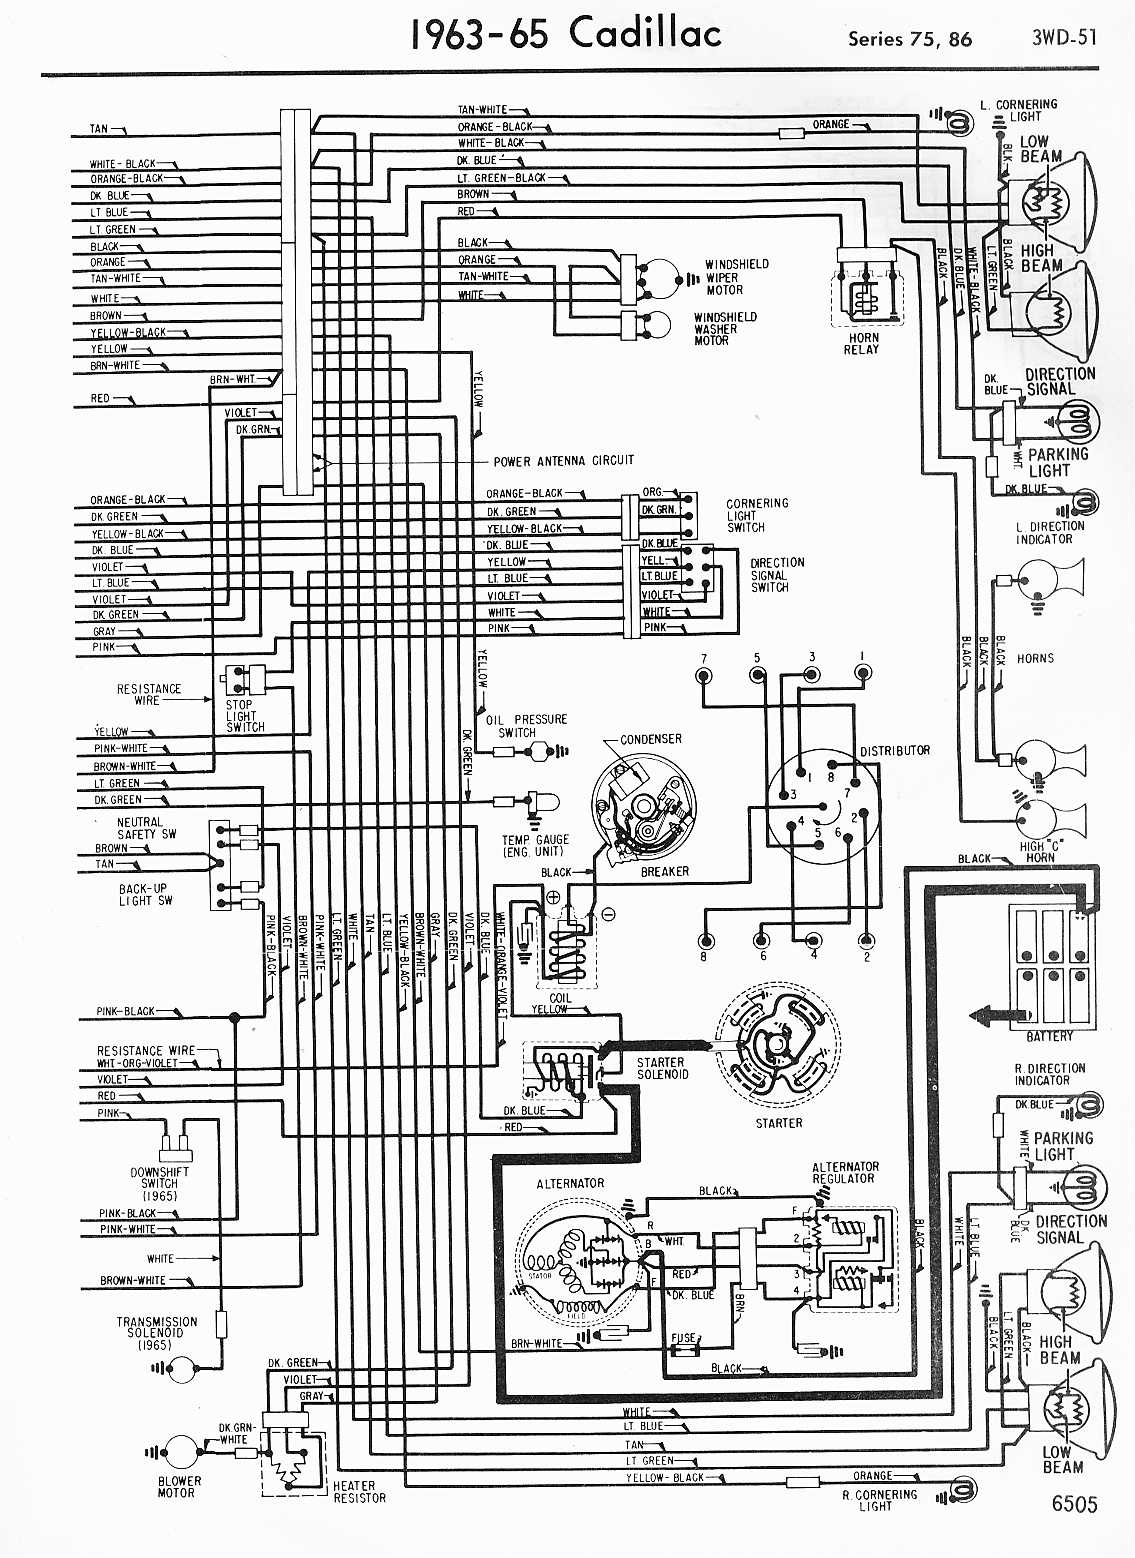 1963 Cadillac Wiring Diagram Reinvent Your Gmc Motor Starter Diagrams 1957 1965 Rh Oldcarmanualproject Com Coupe Deville